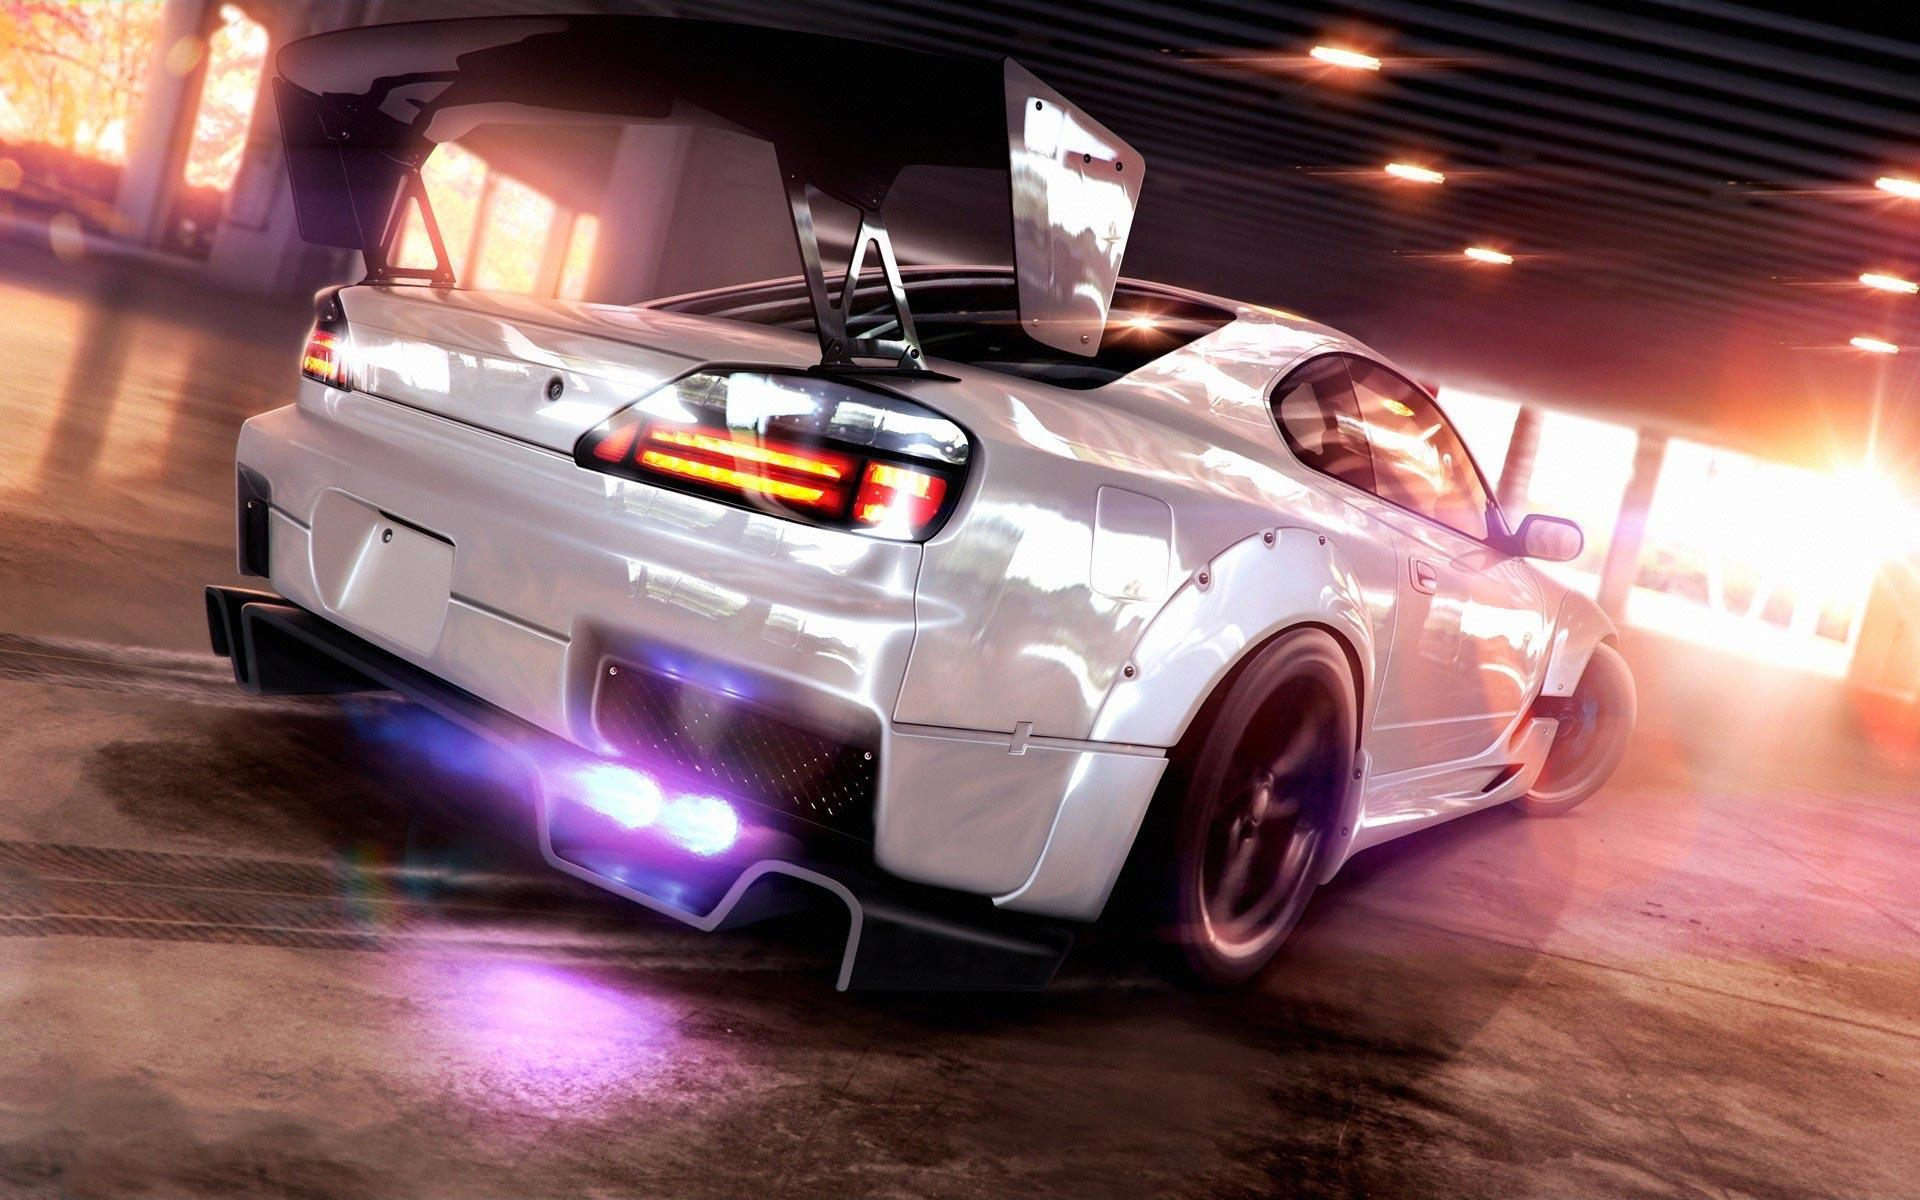 Drift Cars Wallpapers - Full HD wallpaper search